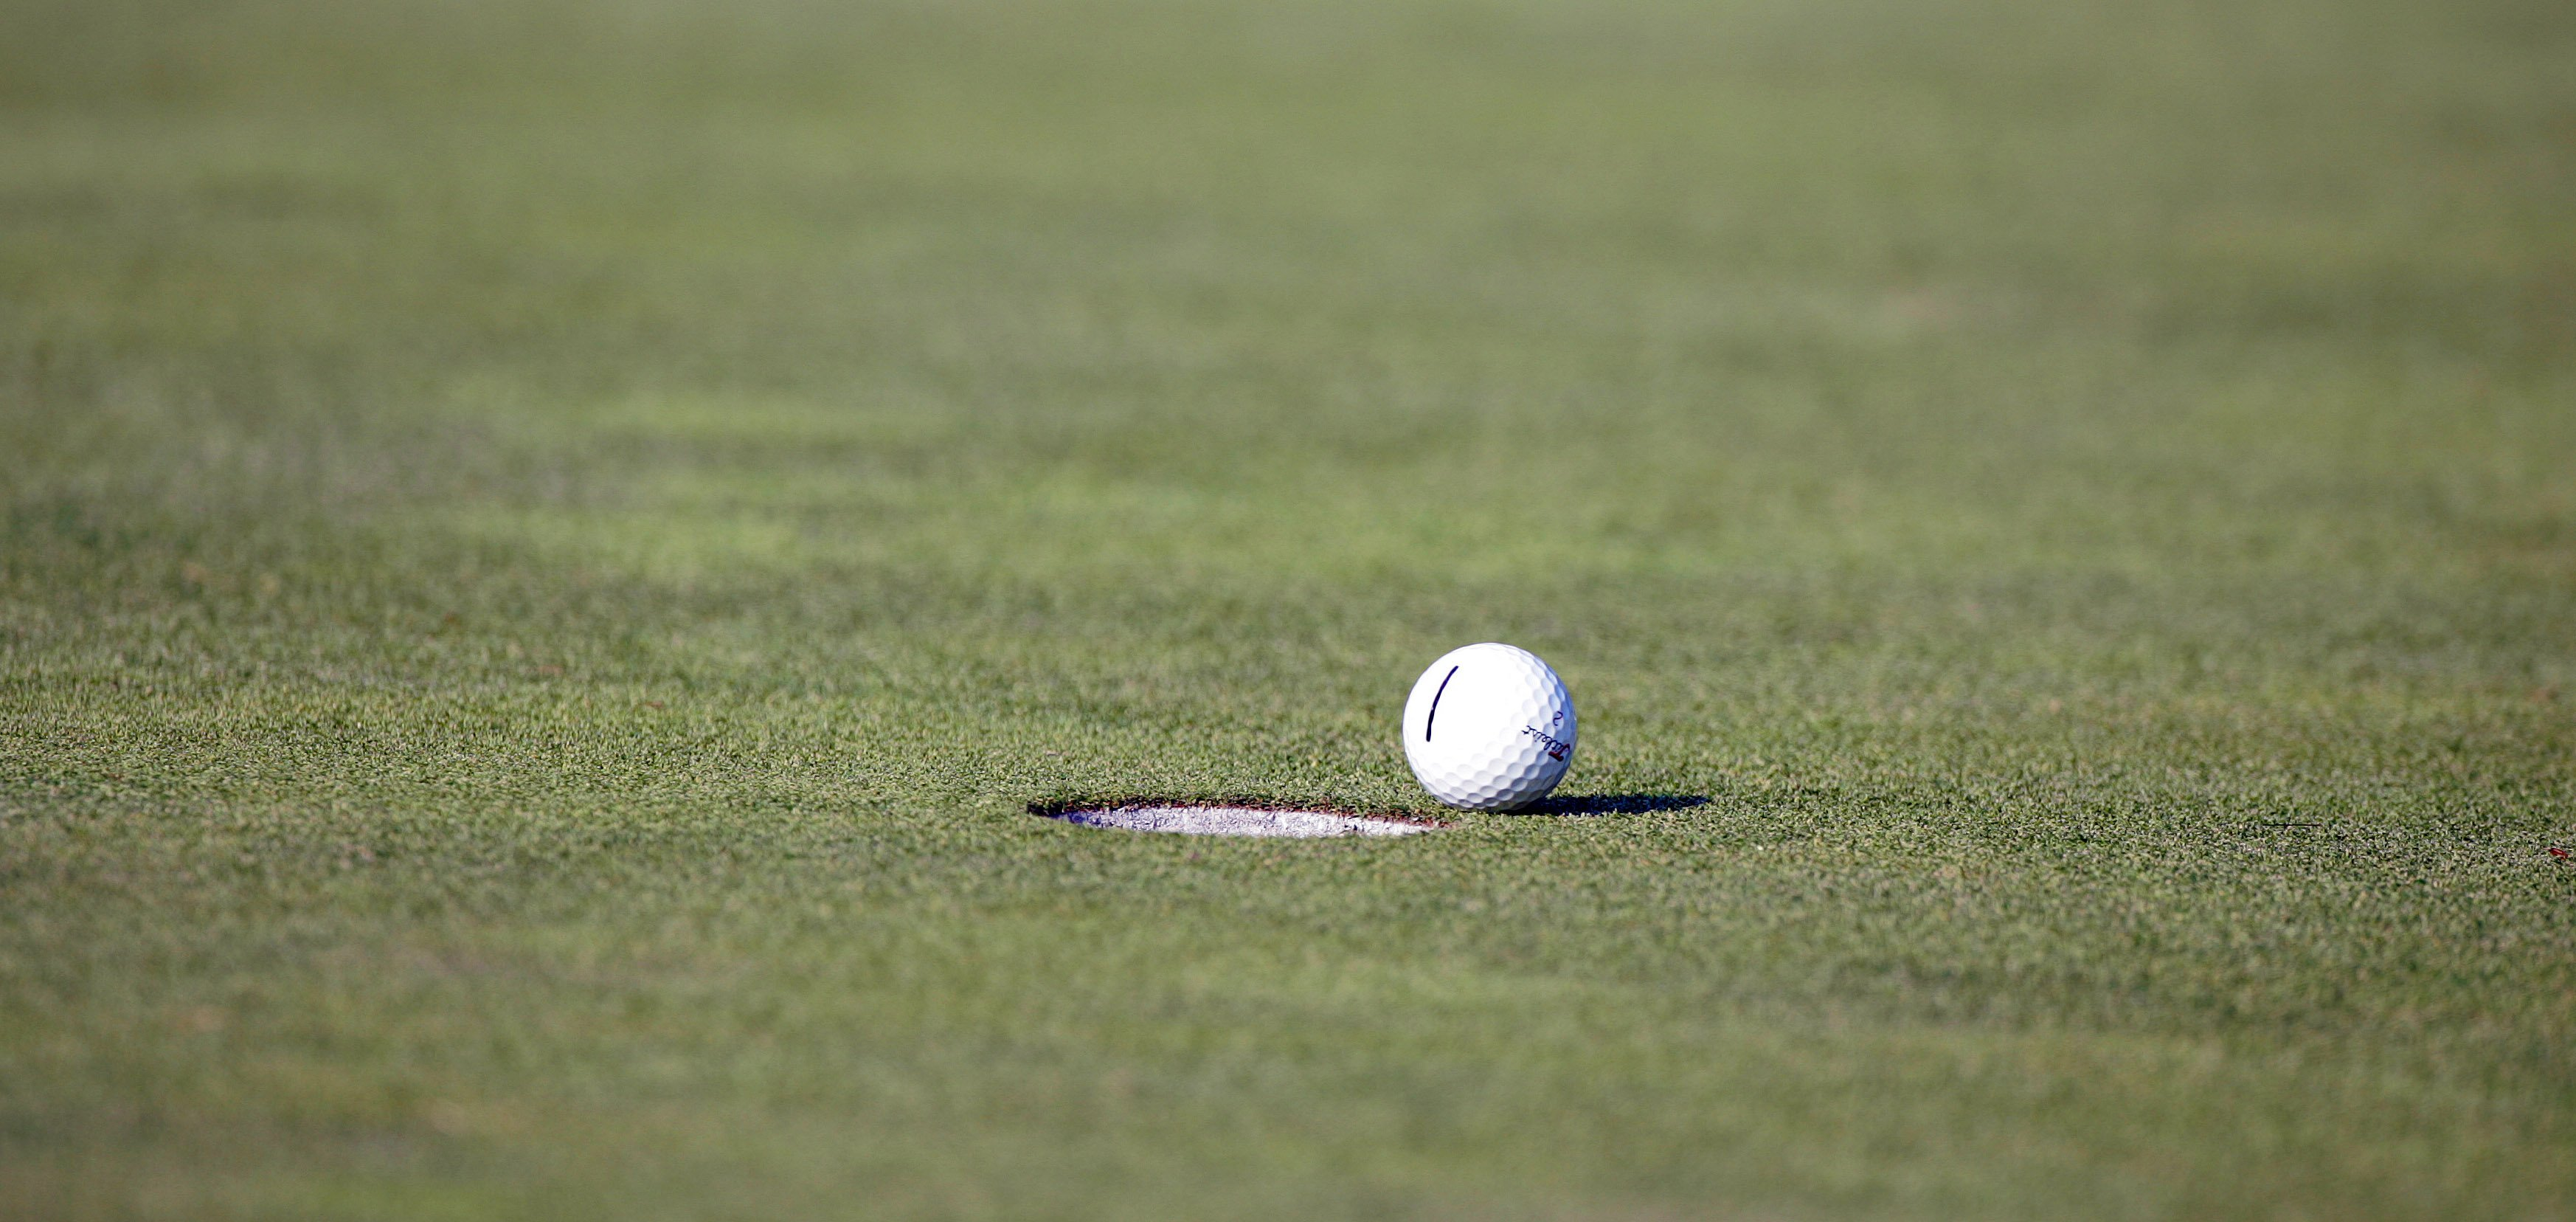 A golf ball falls short of it's target during final round of the 2005 Bell Canadian Open, September 11, 2005 at Shaughnessy Golf & Country Club, Vancouver | Photo: Getty Images